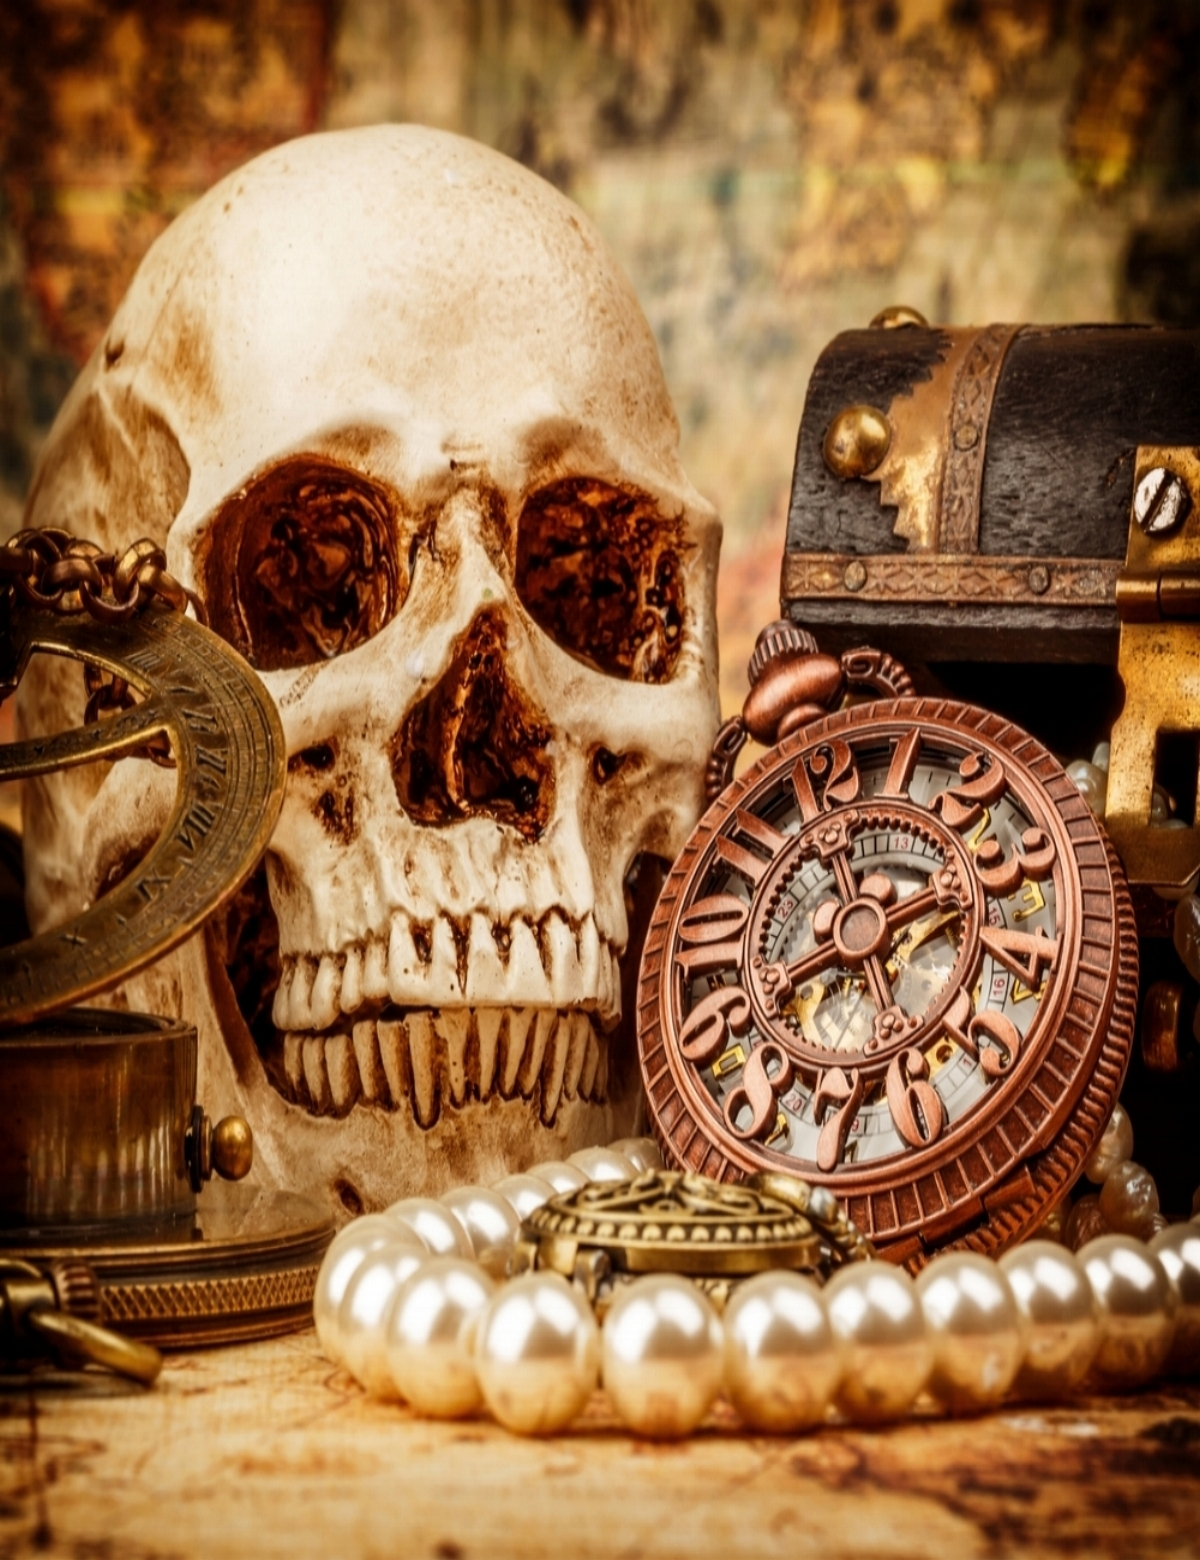 Escape Room Breckenridge Captain Steelhook's Treasure